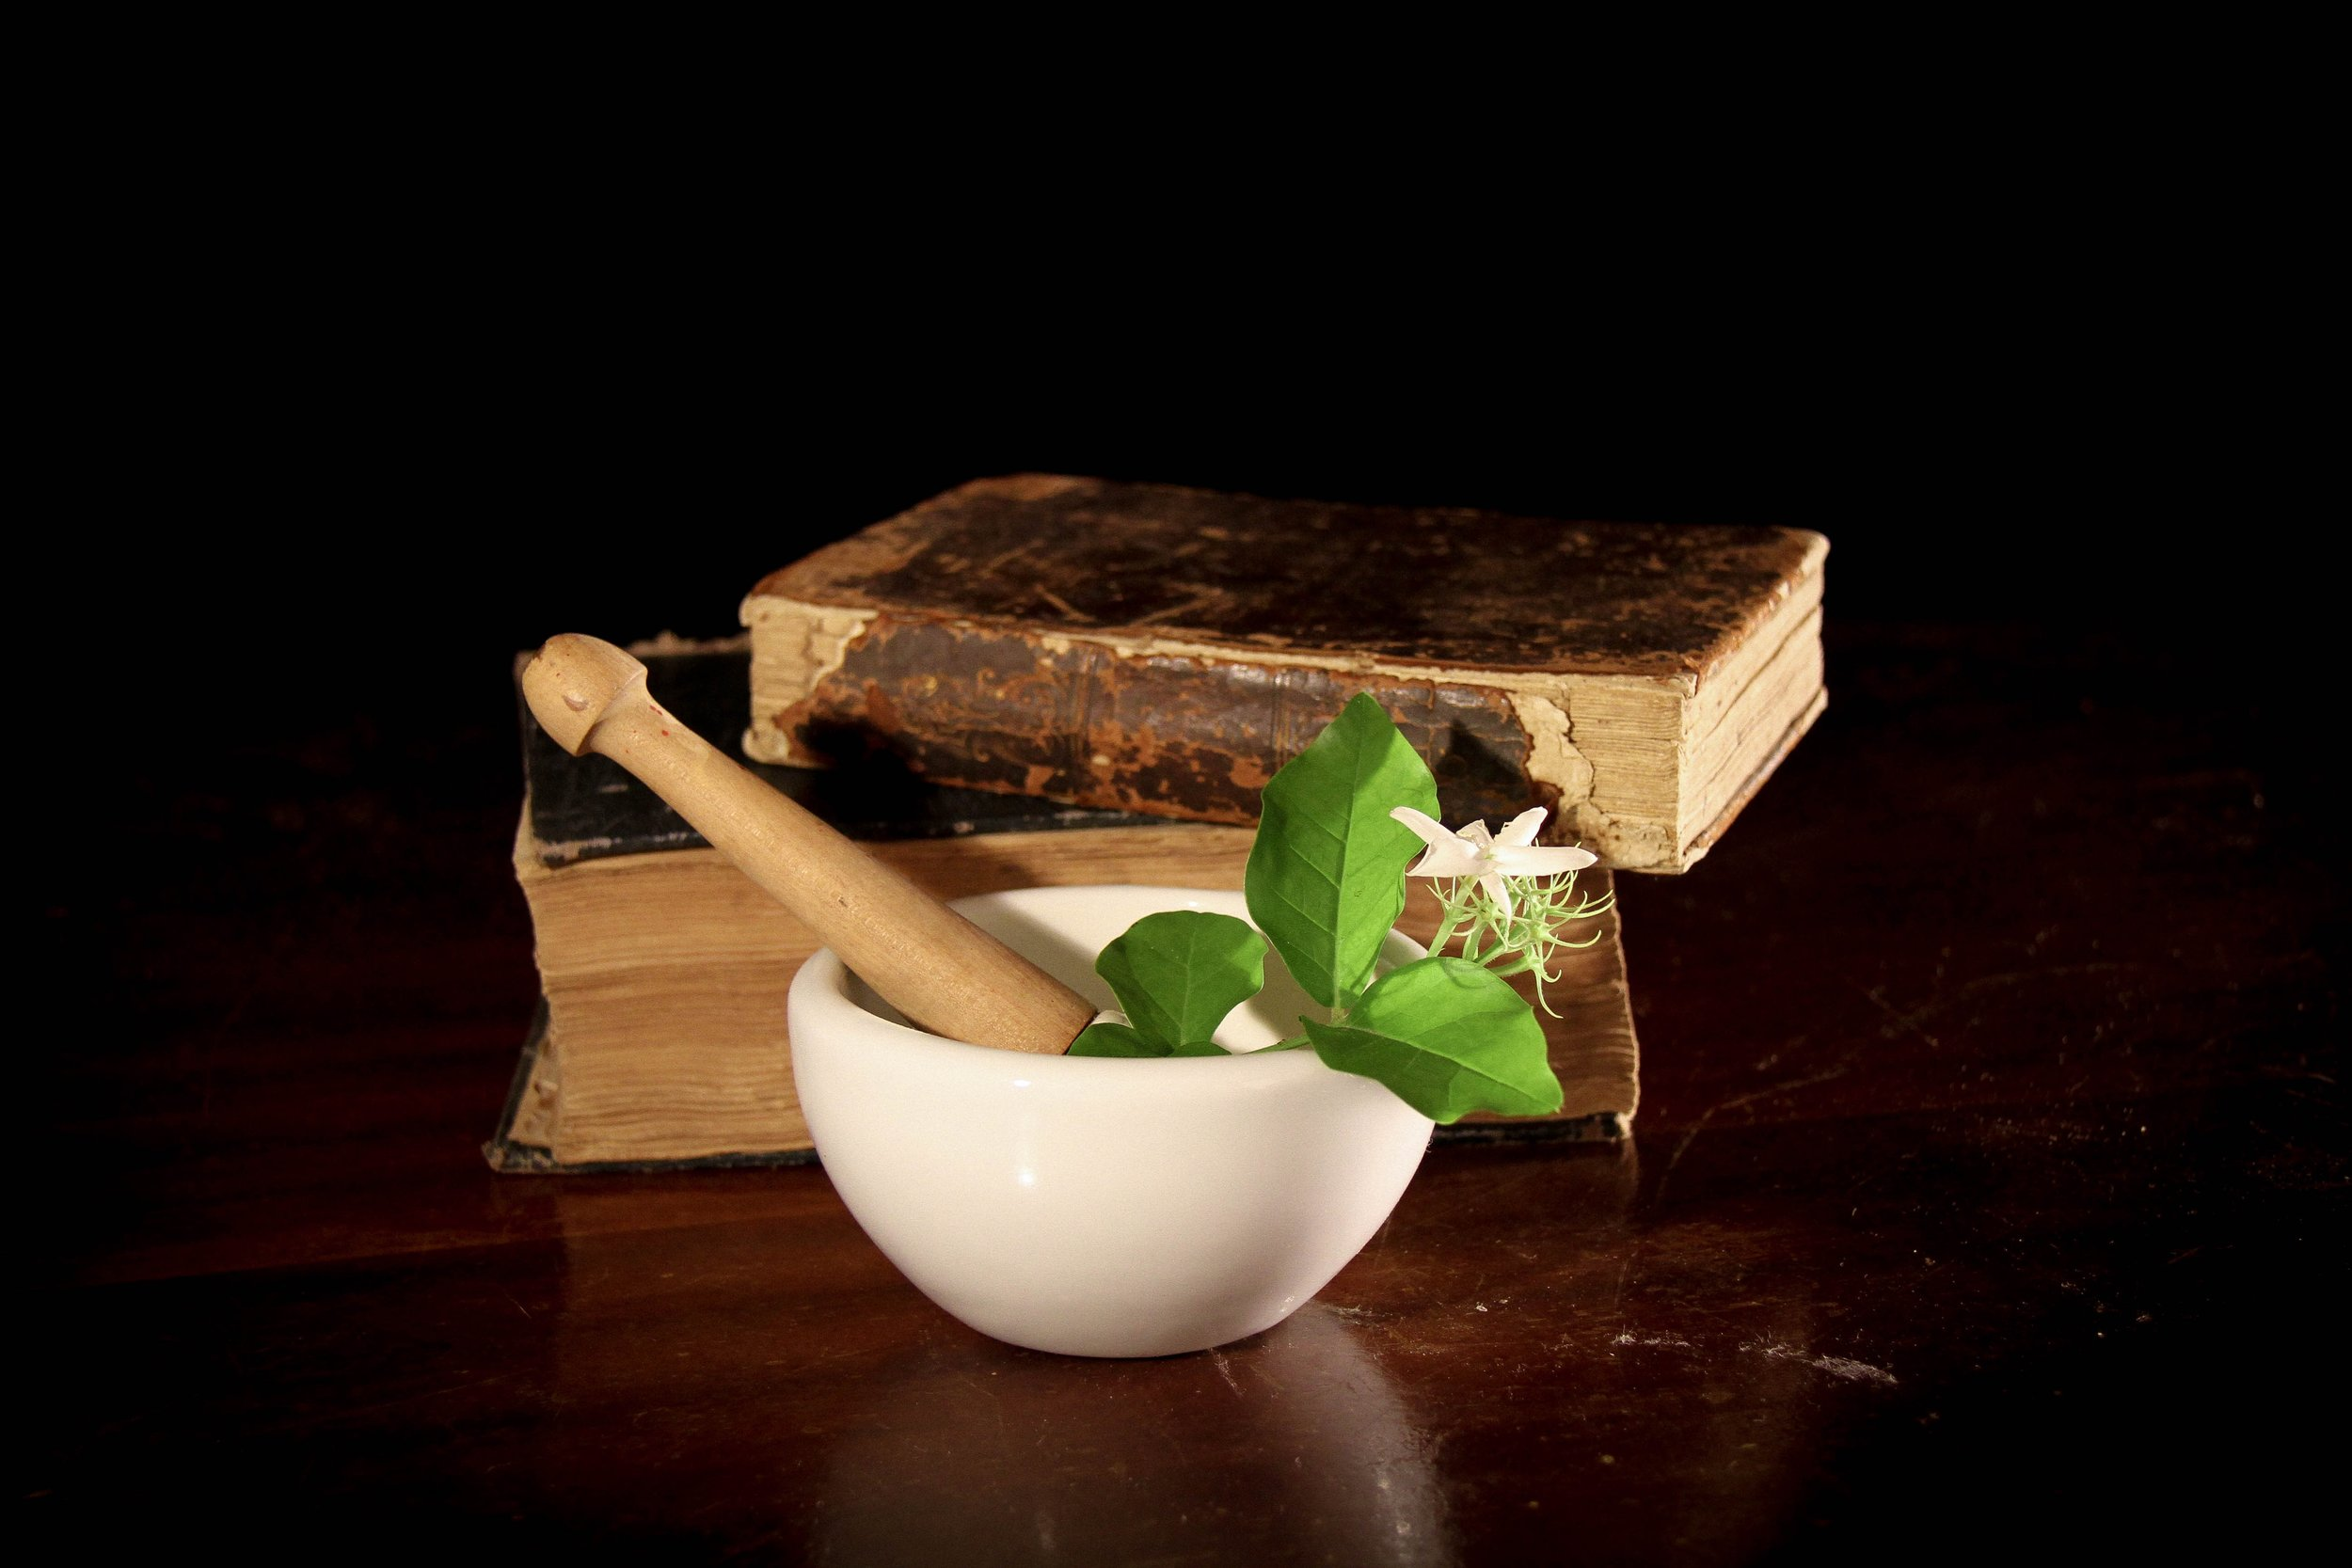 Mortar and pestle used by compounding pharmacists